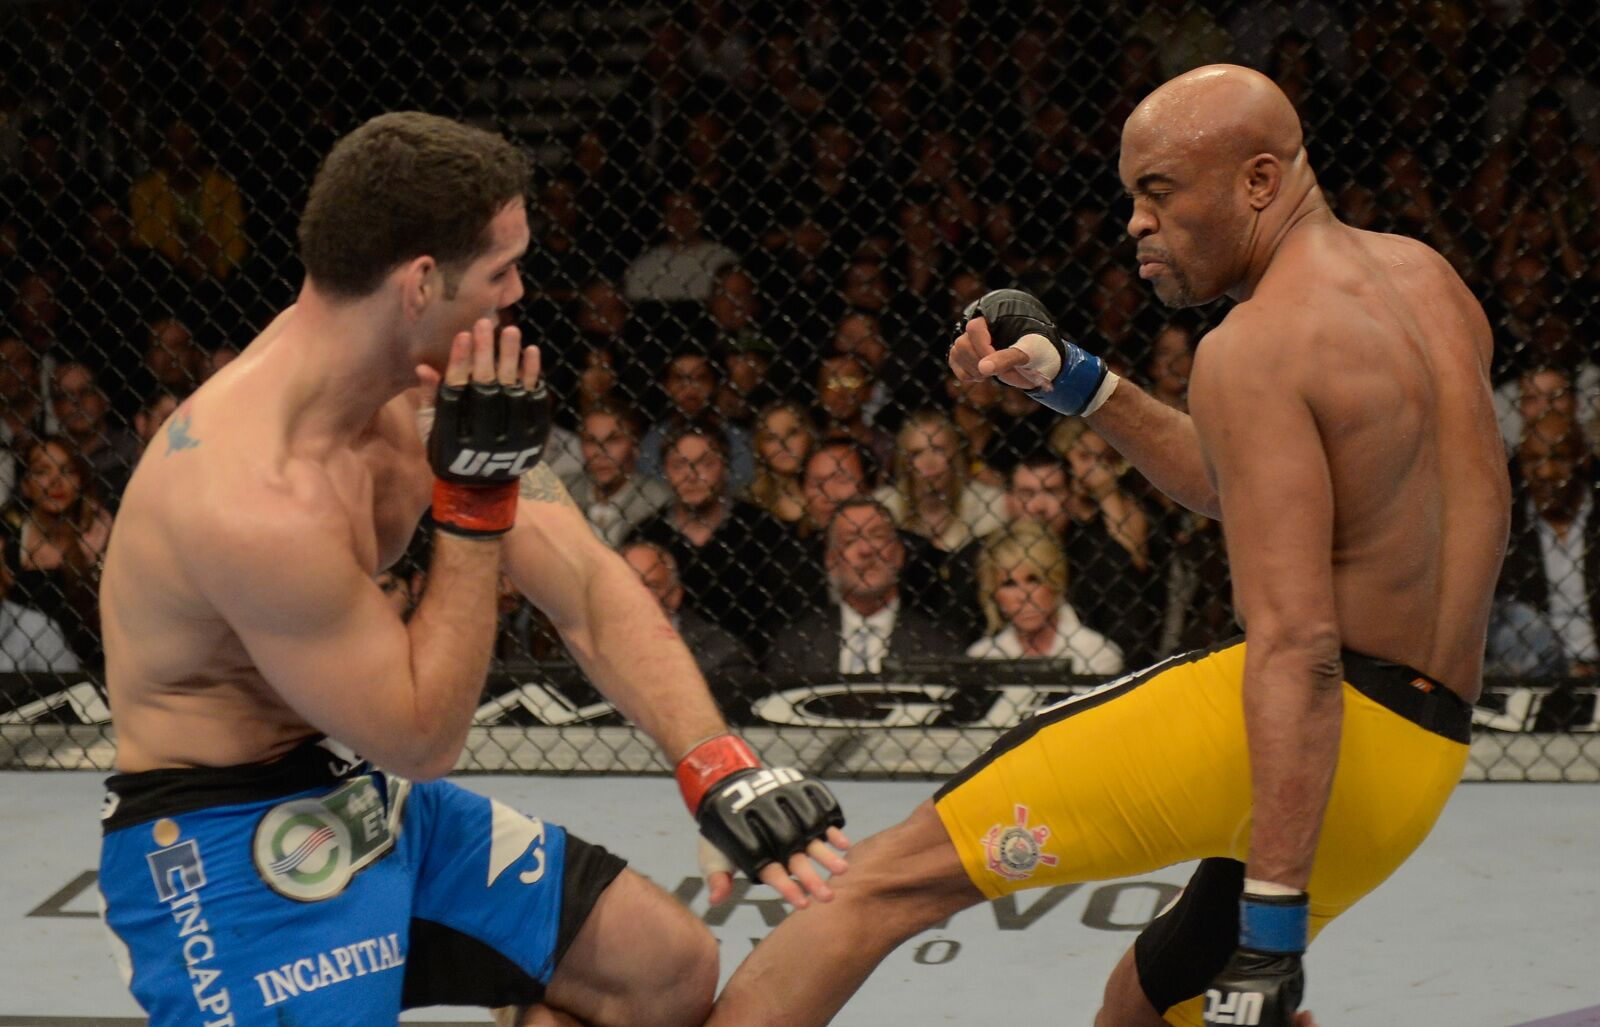 10 of the most gruesome injuries in mixed martial arts